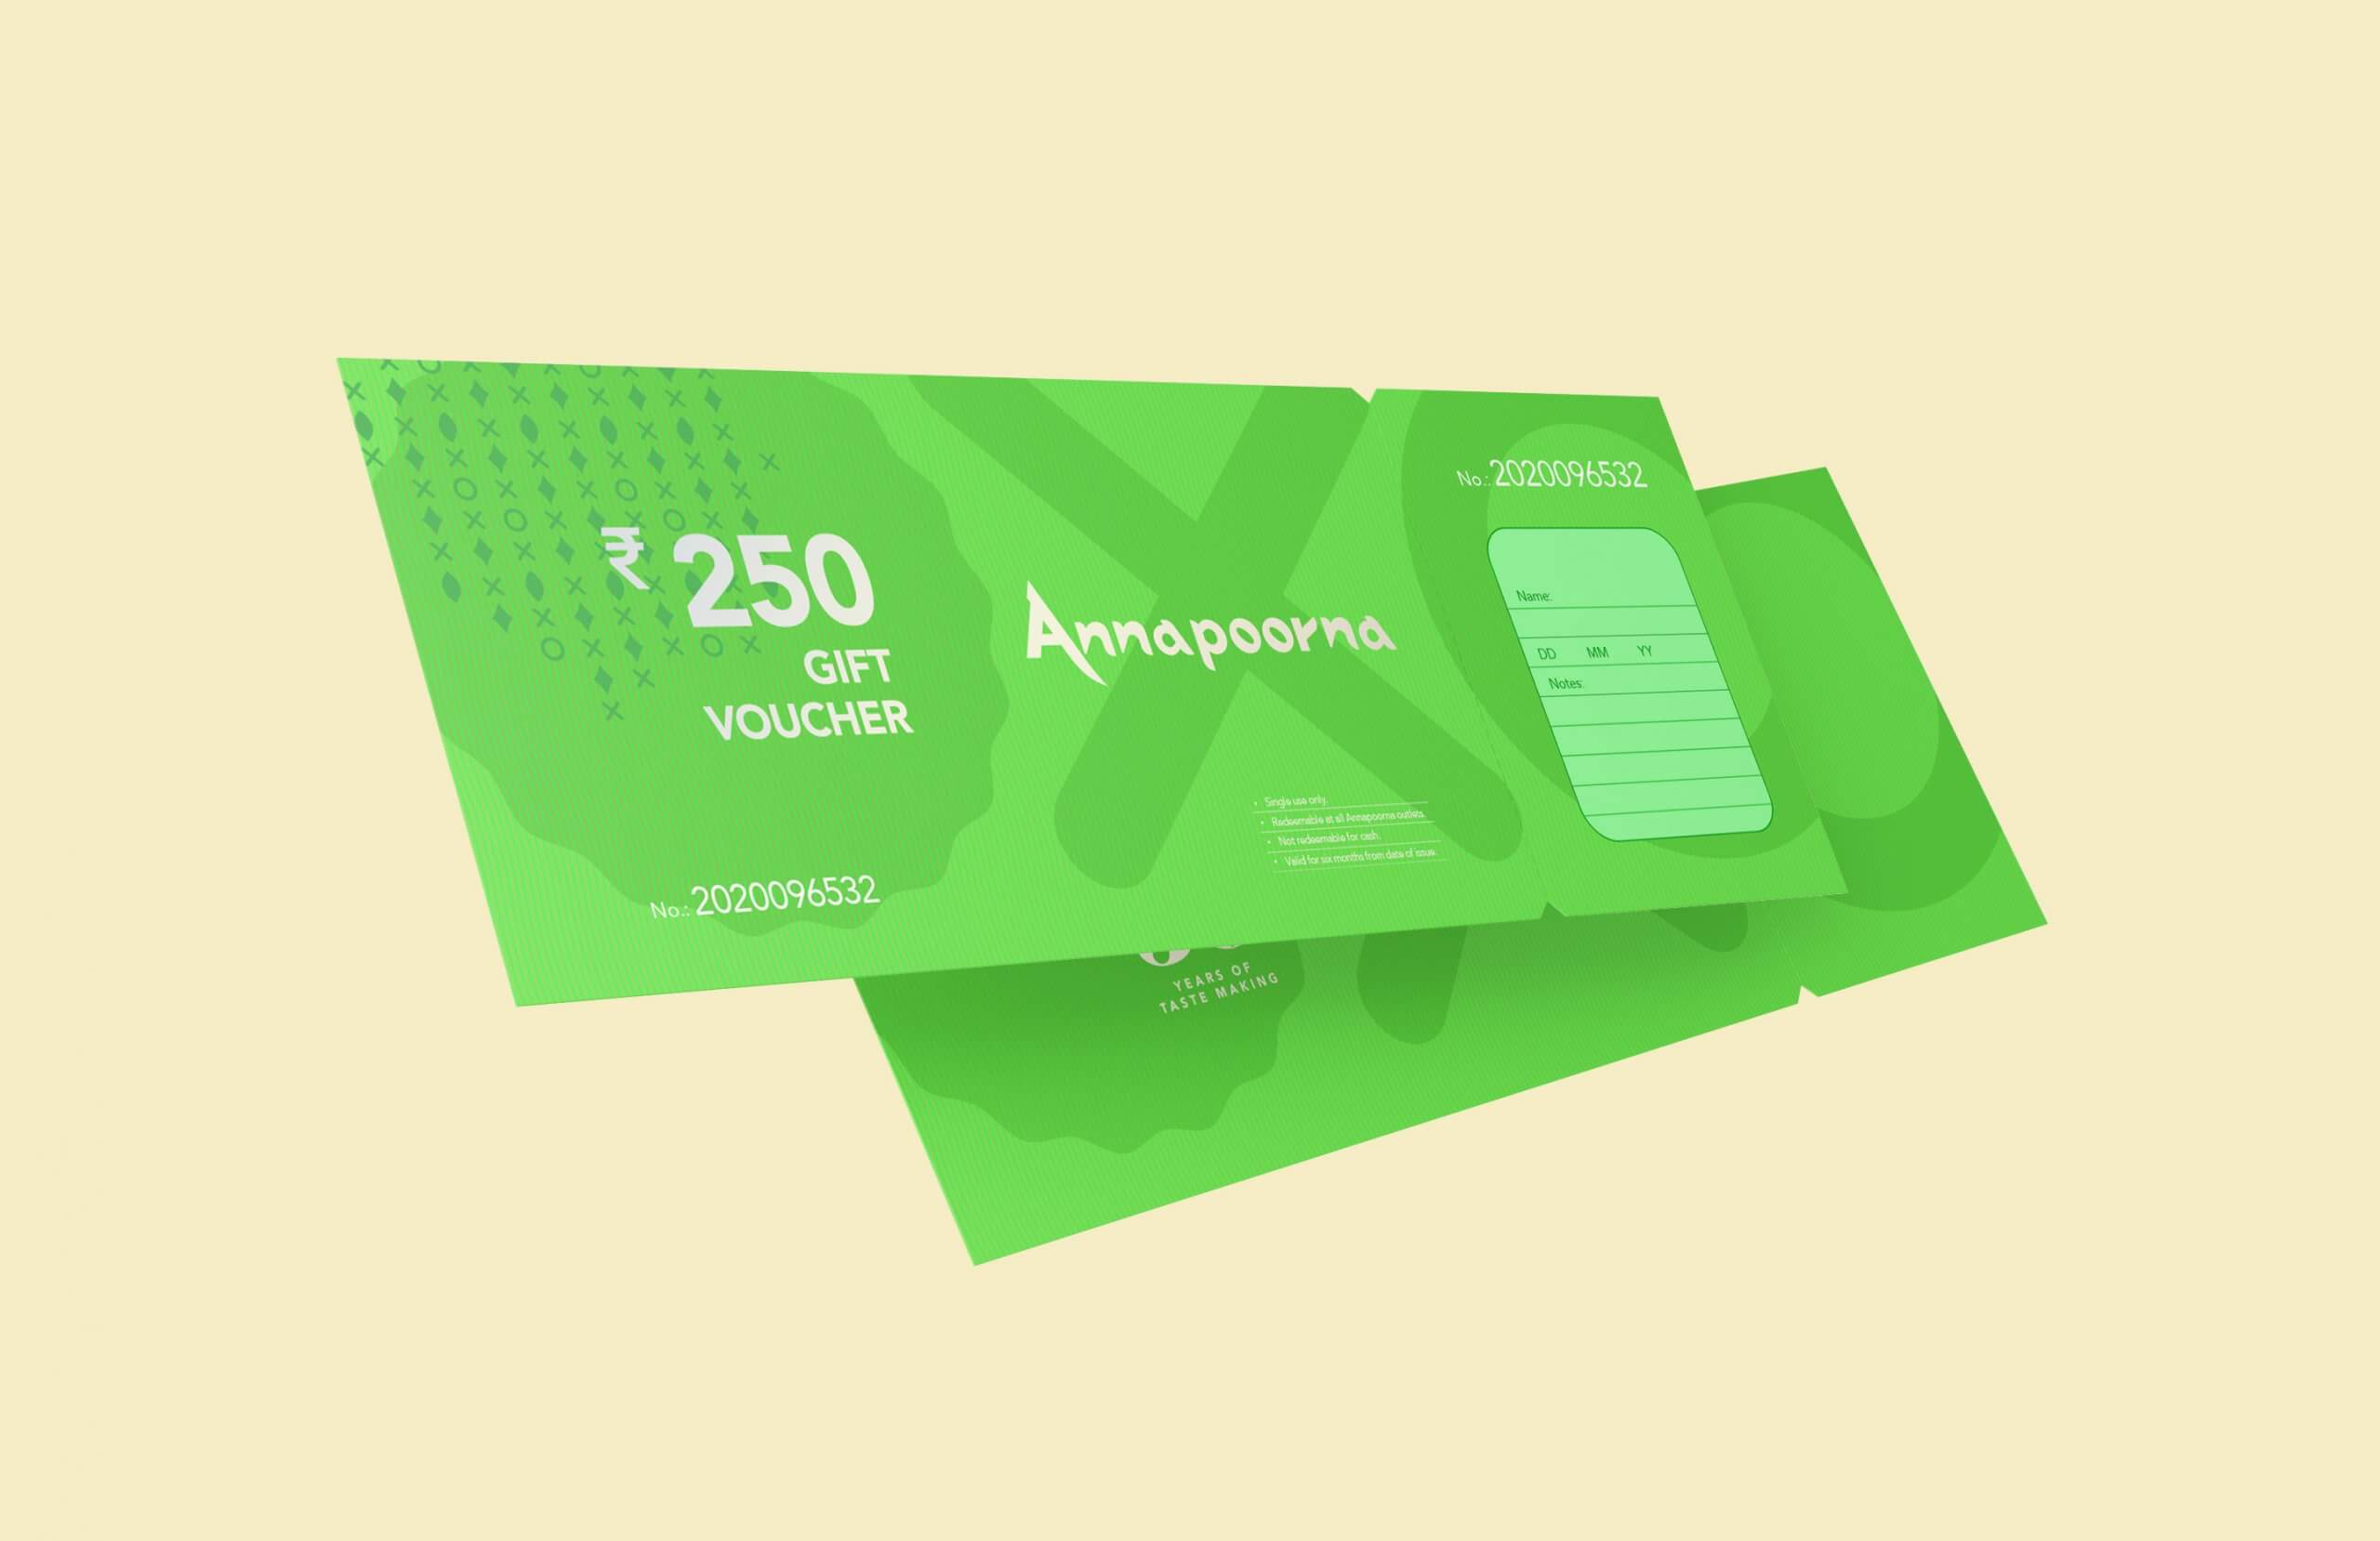 Annapoorna-Gift-Voucher-250_2020-copy